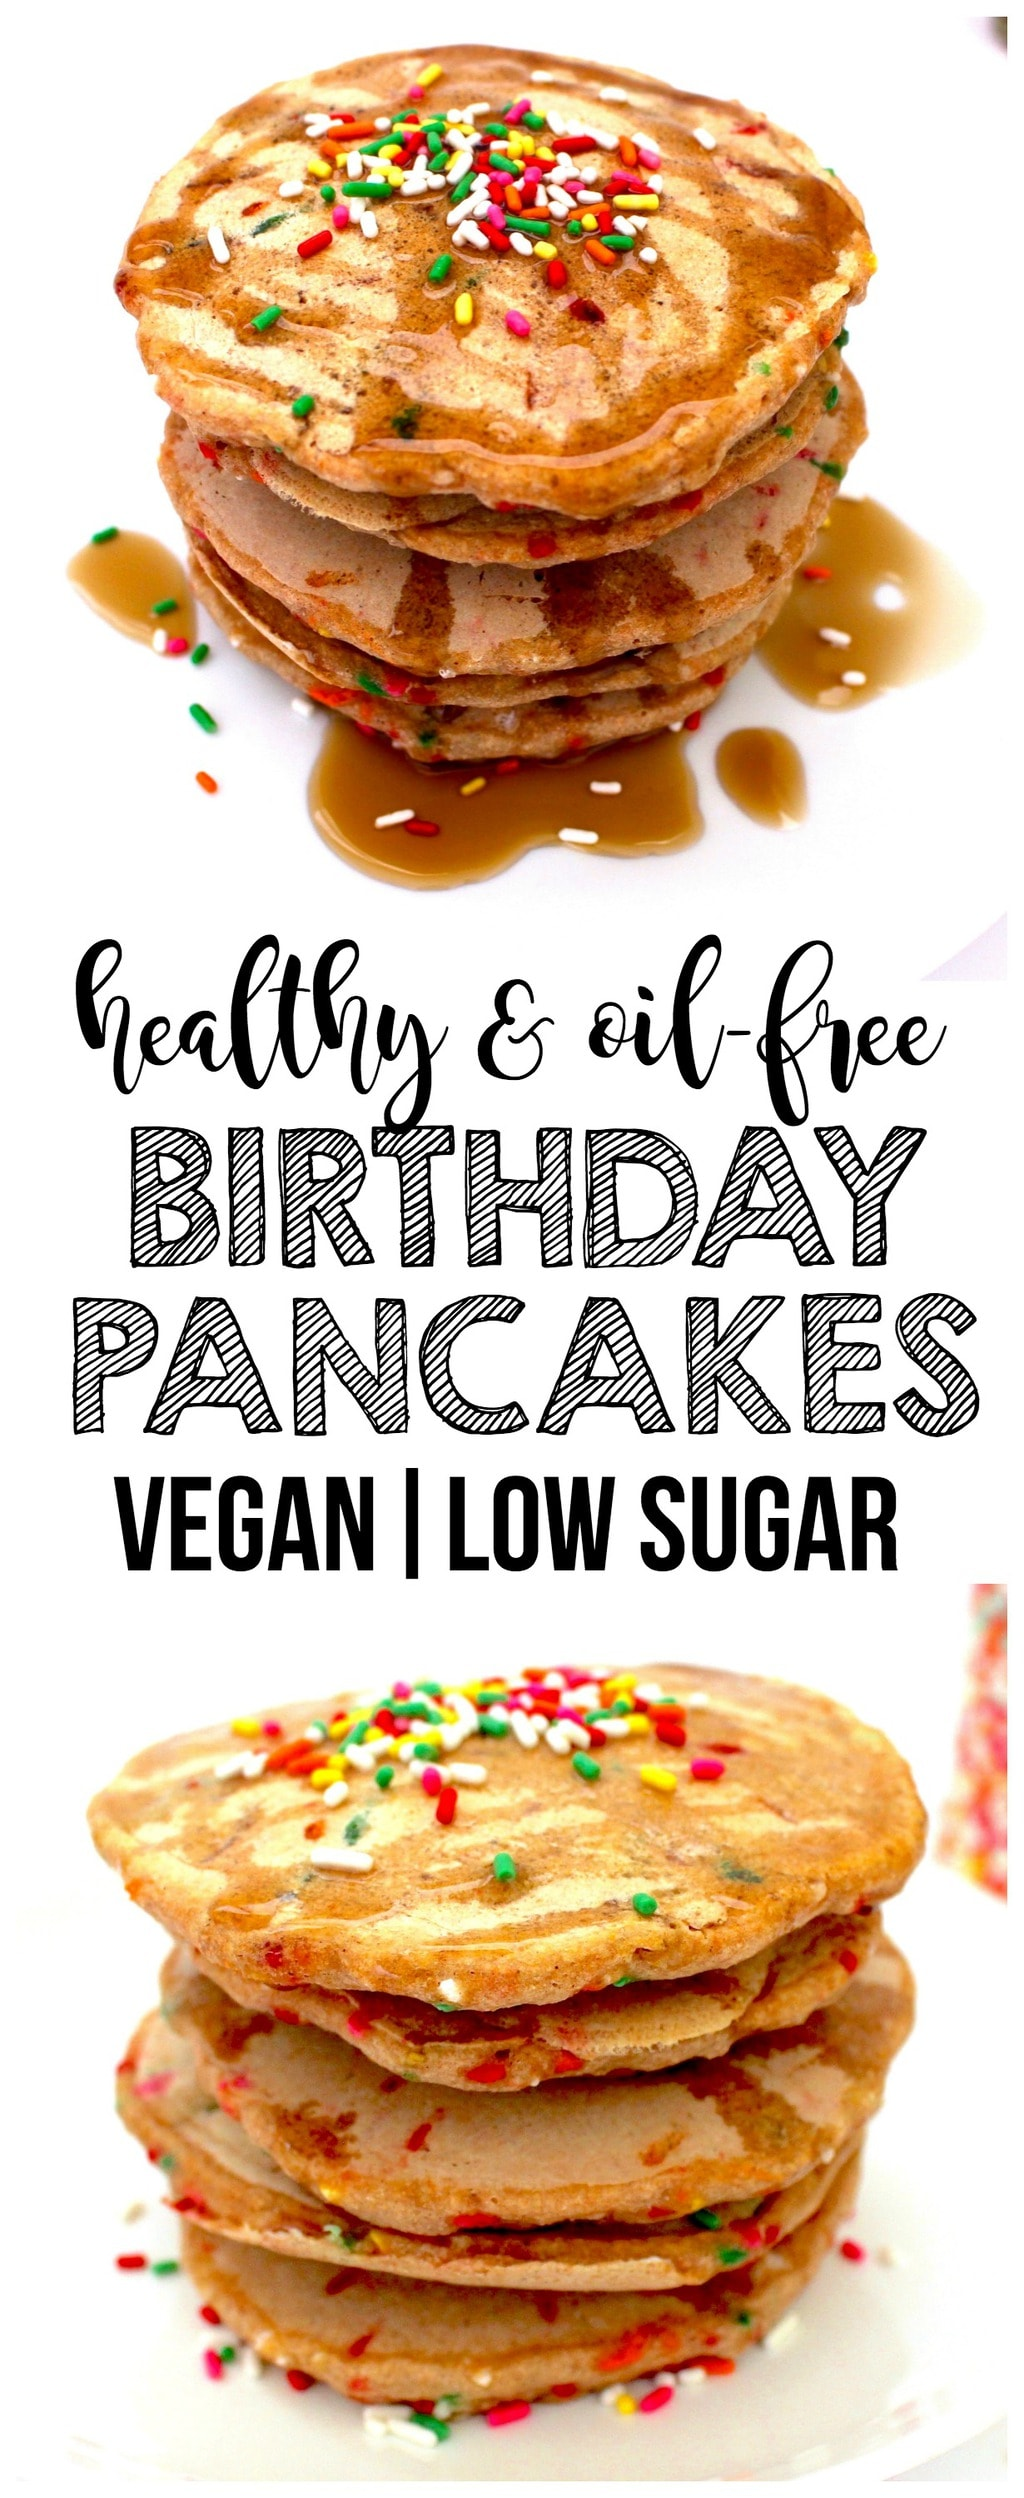 These cute & festive Vegan Birthday Pancakes are the perfect birthday breakfast! They are low-fat, oil-free, dairy-free, low-sugar, whole-wheat, and scrumptiously sweet and satisfying.